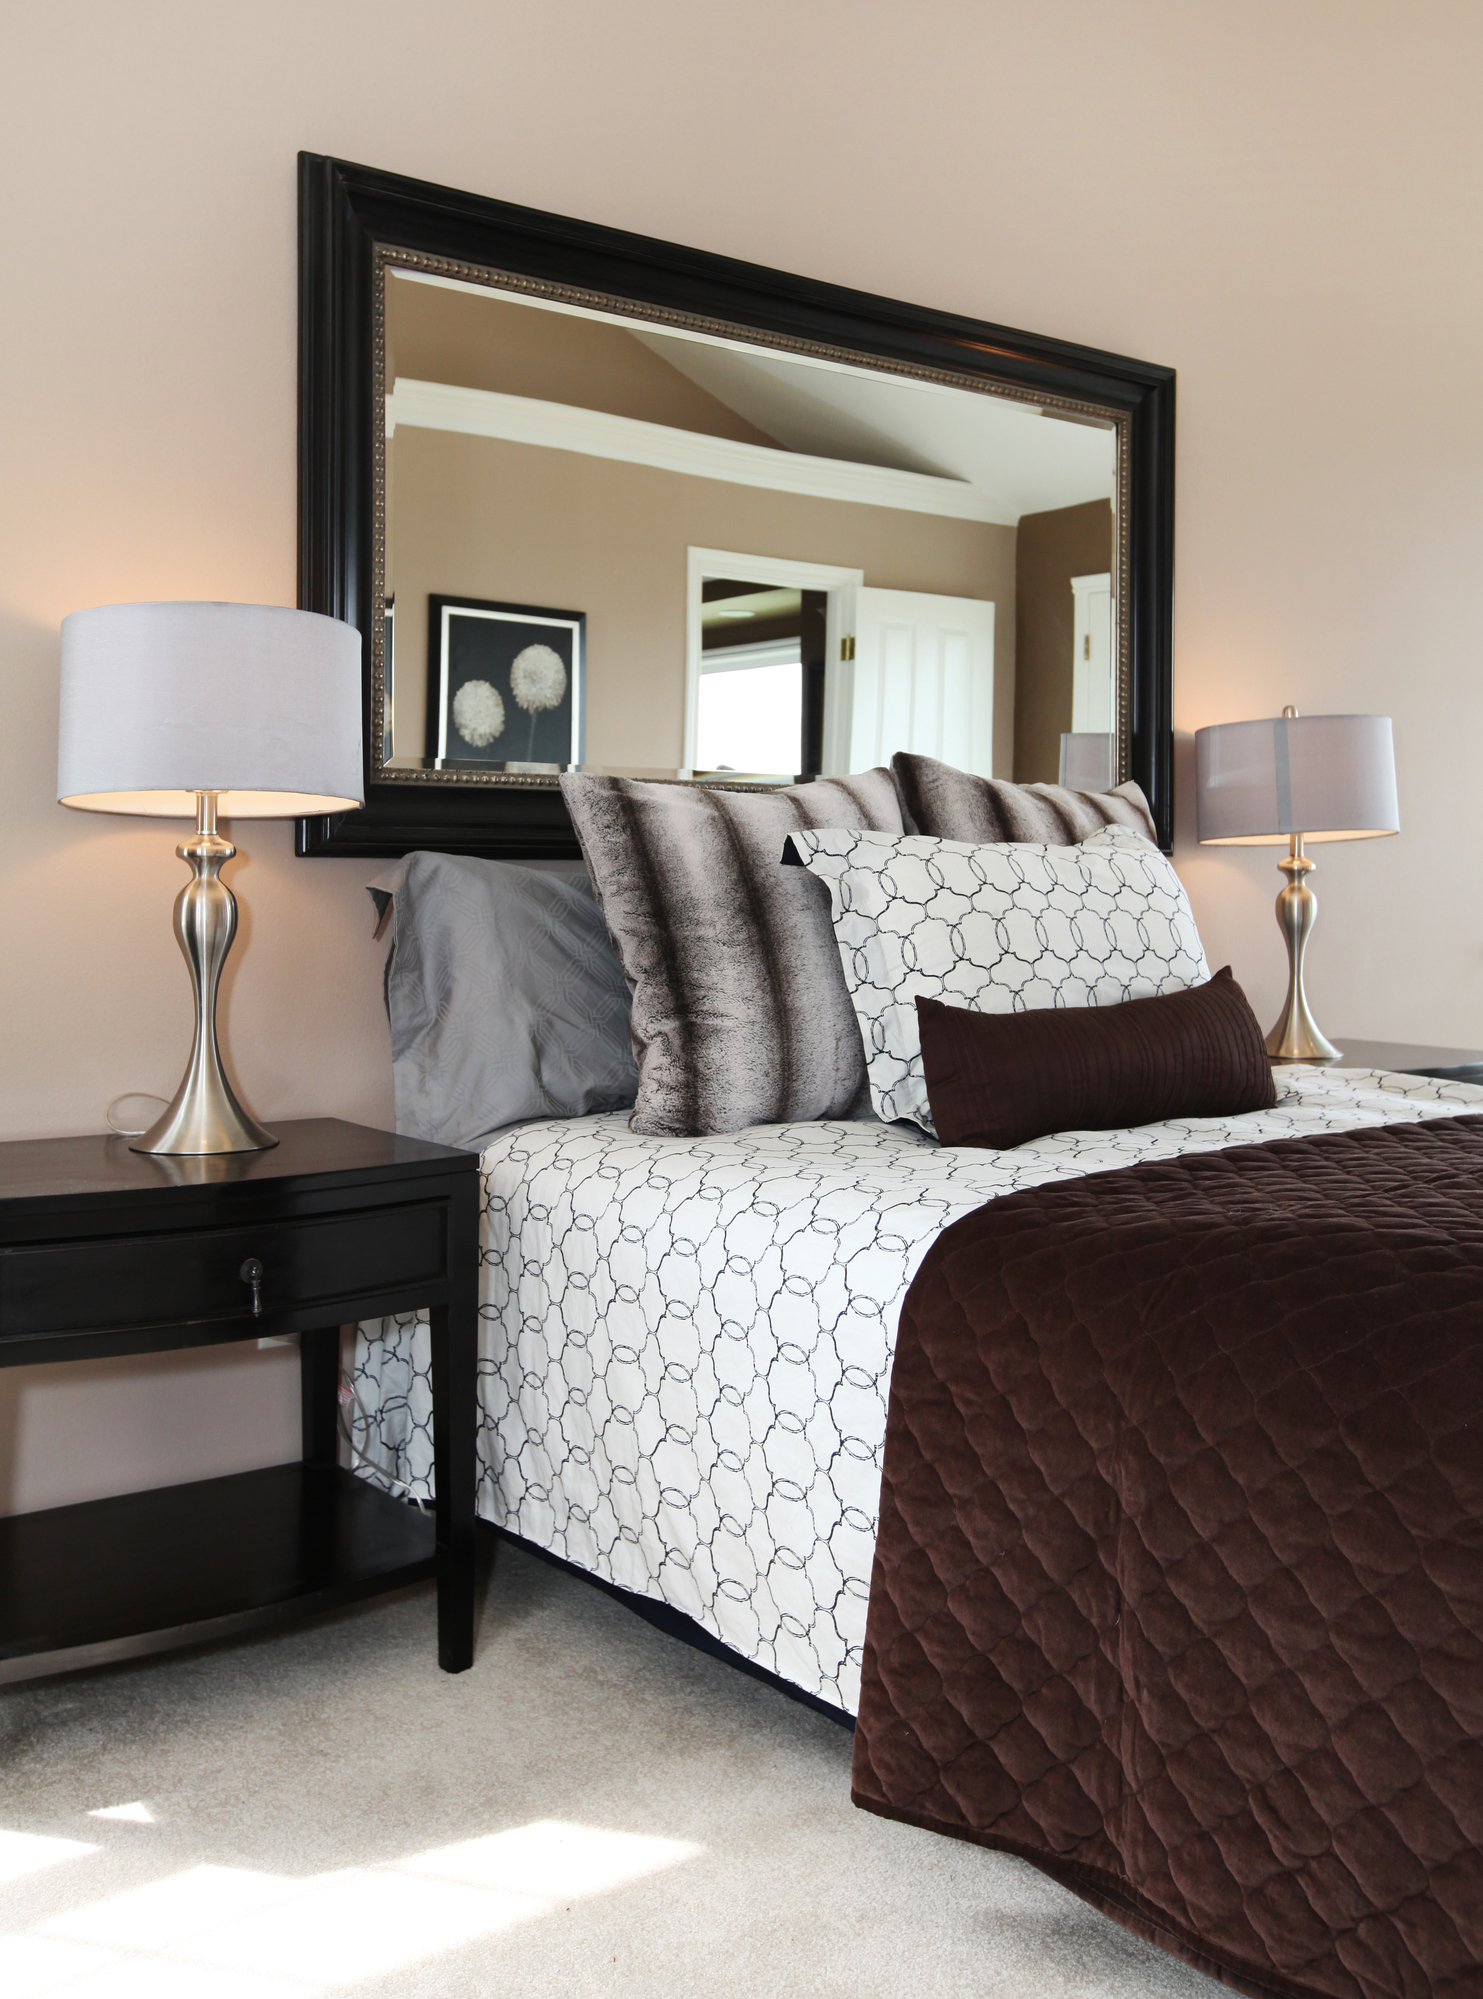 5 Ideas For Decorating A Bedroom With Mirrors Stanford S